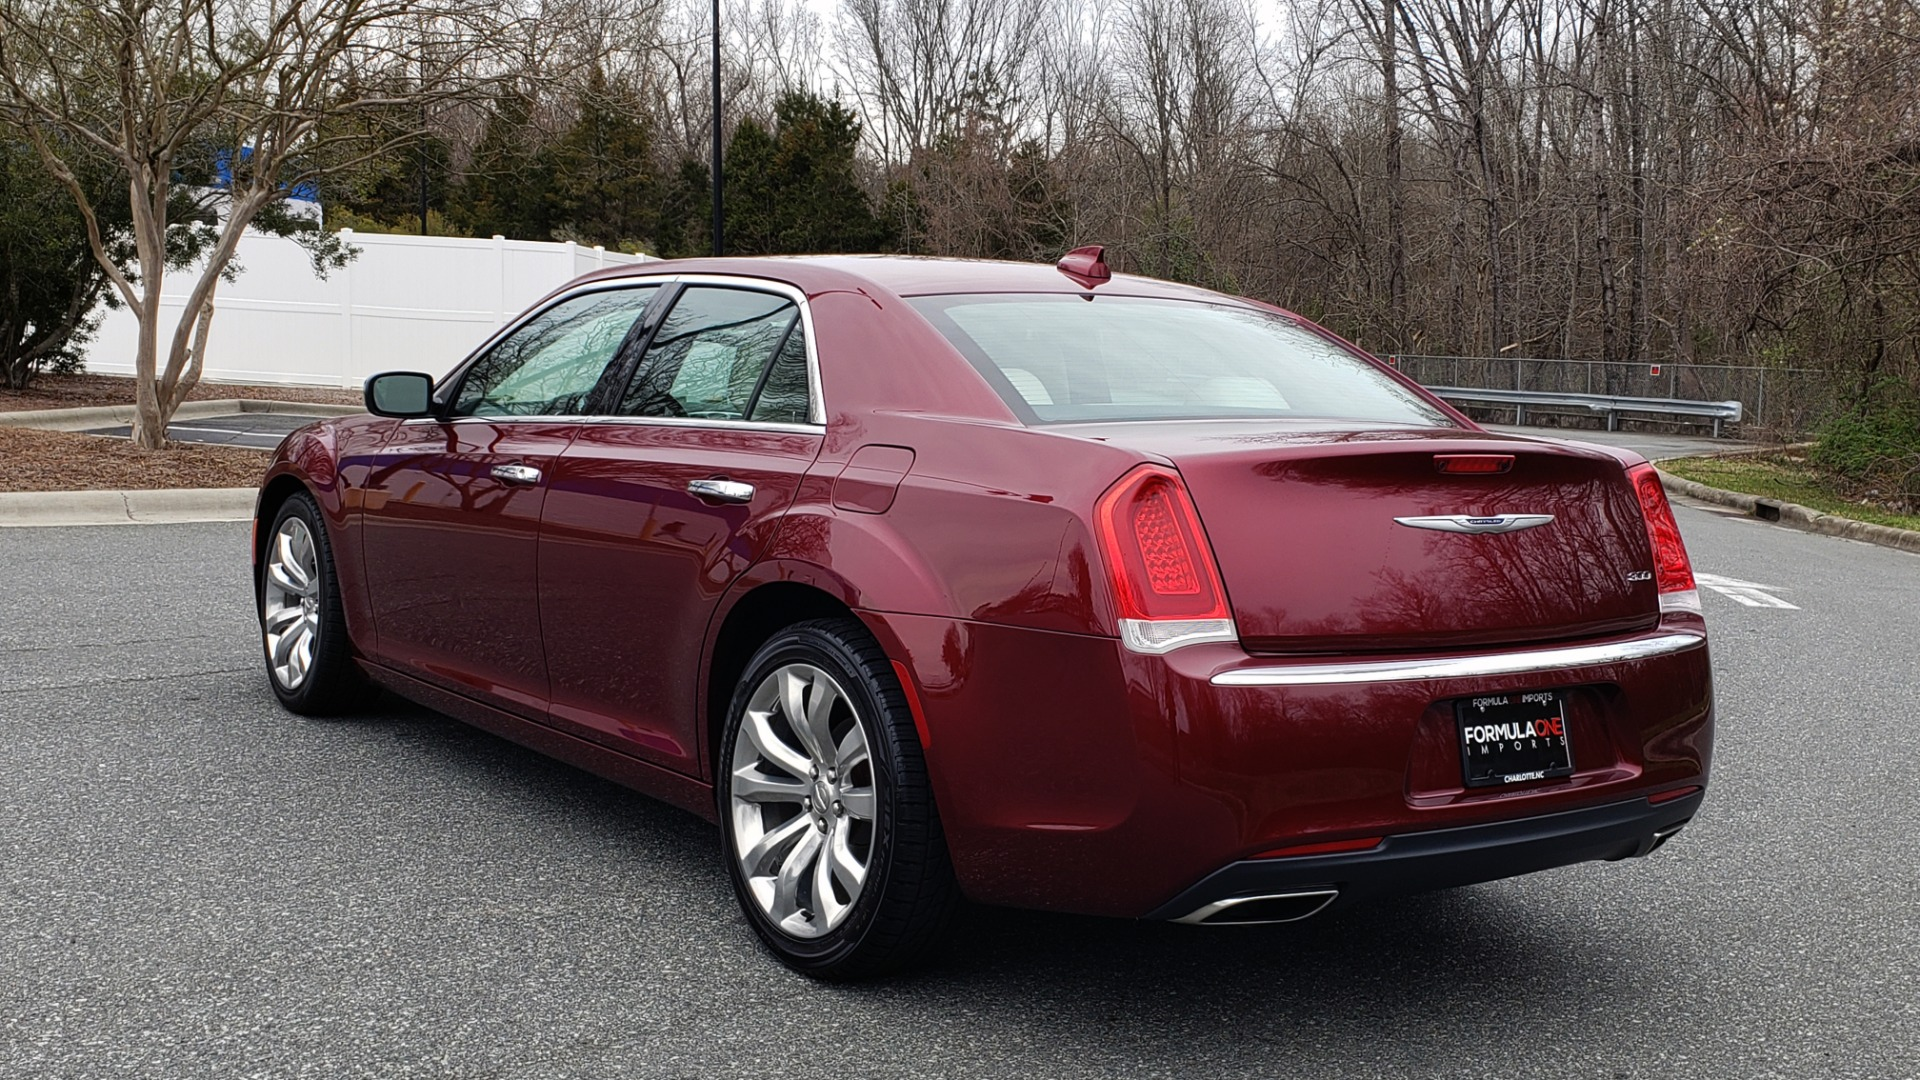 Used 2019 Chrysler 300 LIMITED / 3.6L V6 / 8-SPD AUTO / LEATHER / REARVIEW for sale Sold at Formula Imports in Charlotte NC 28227 4